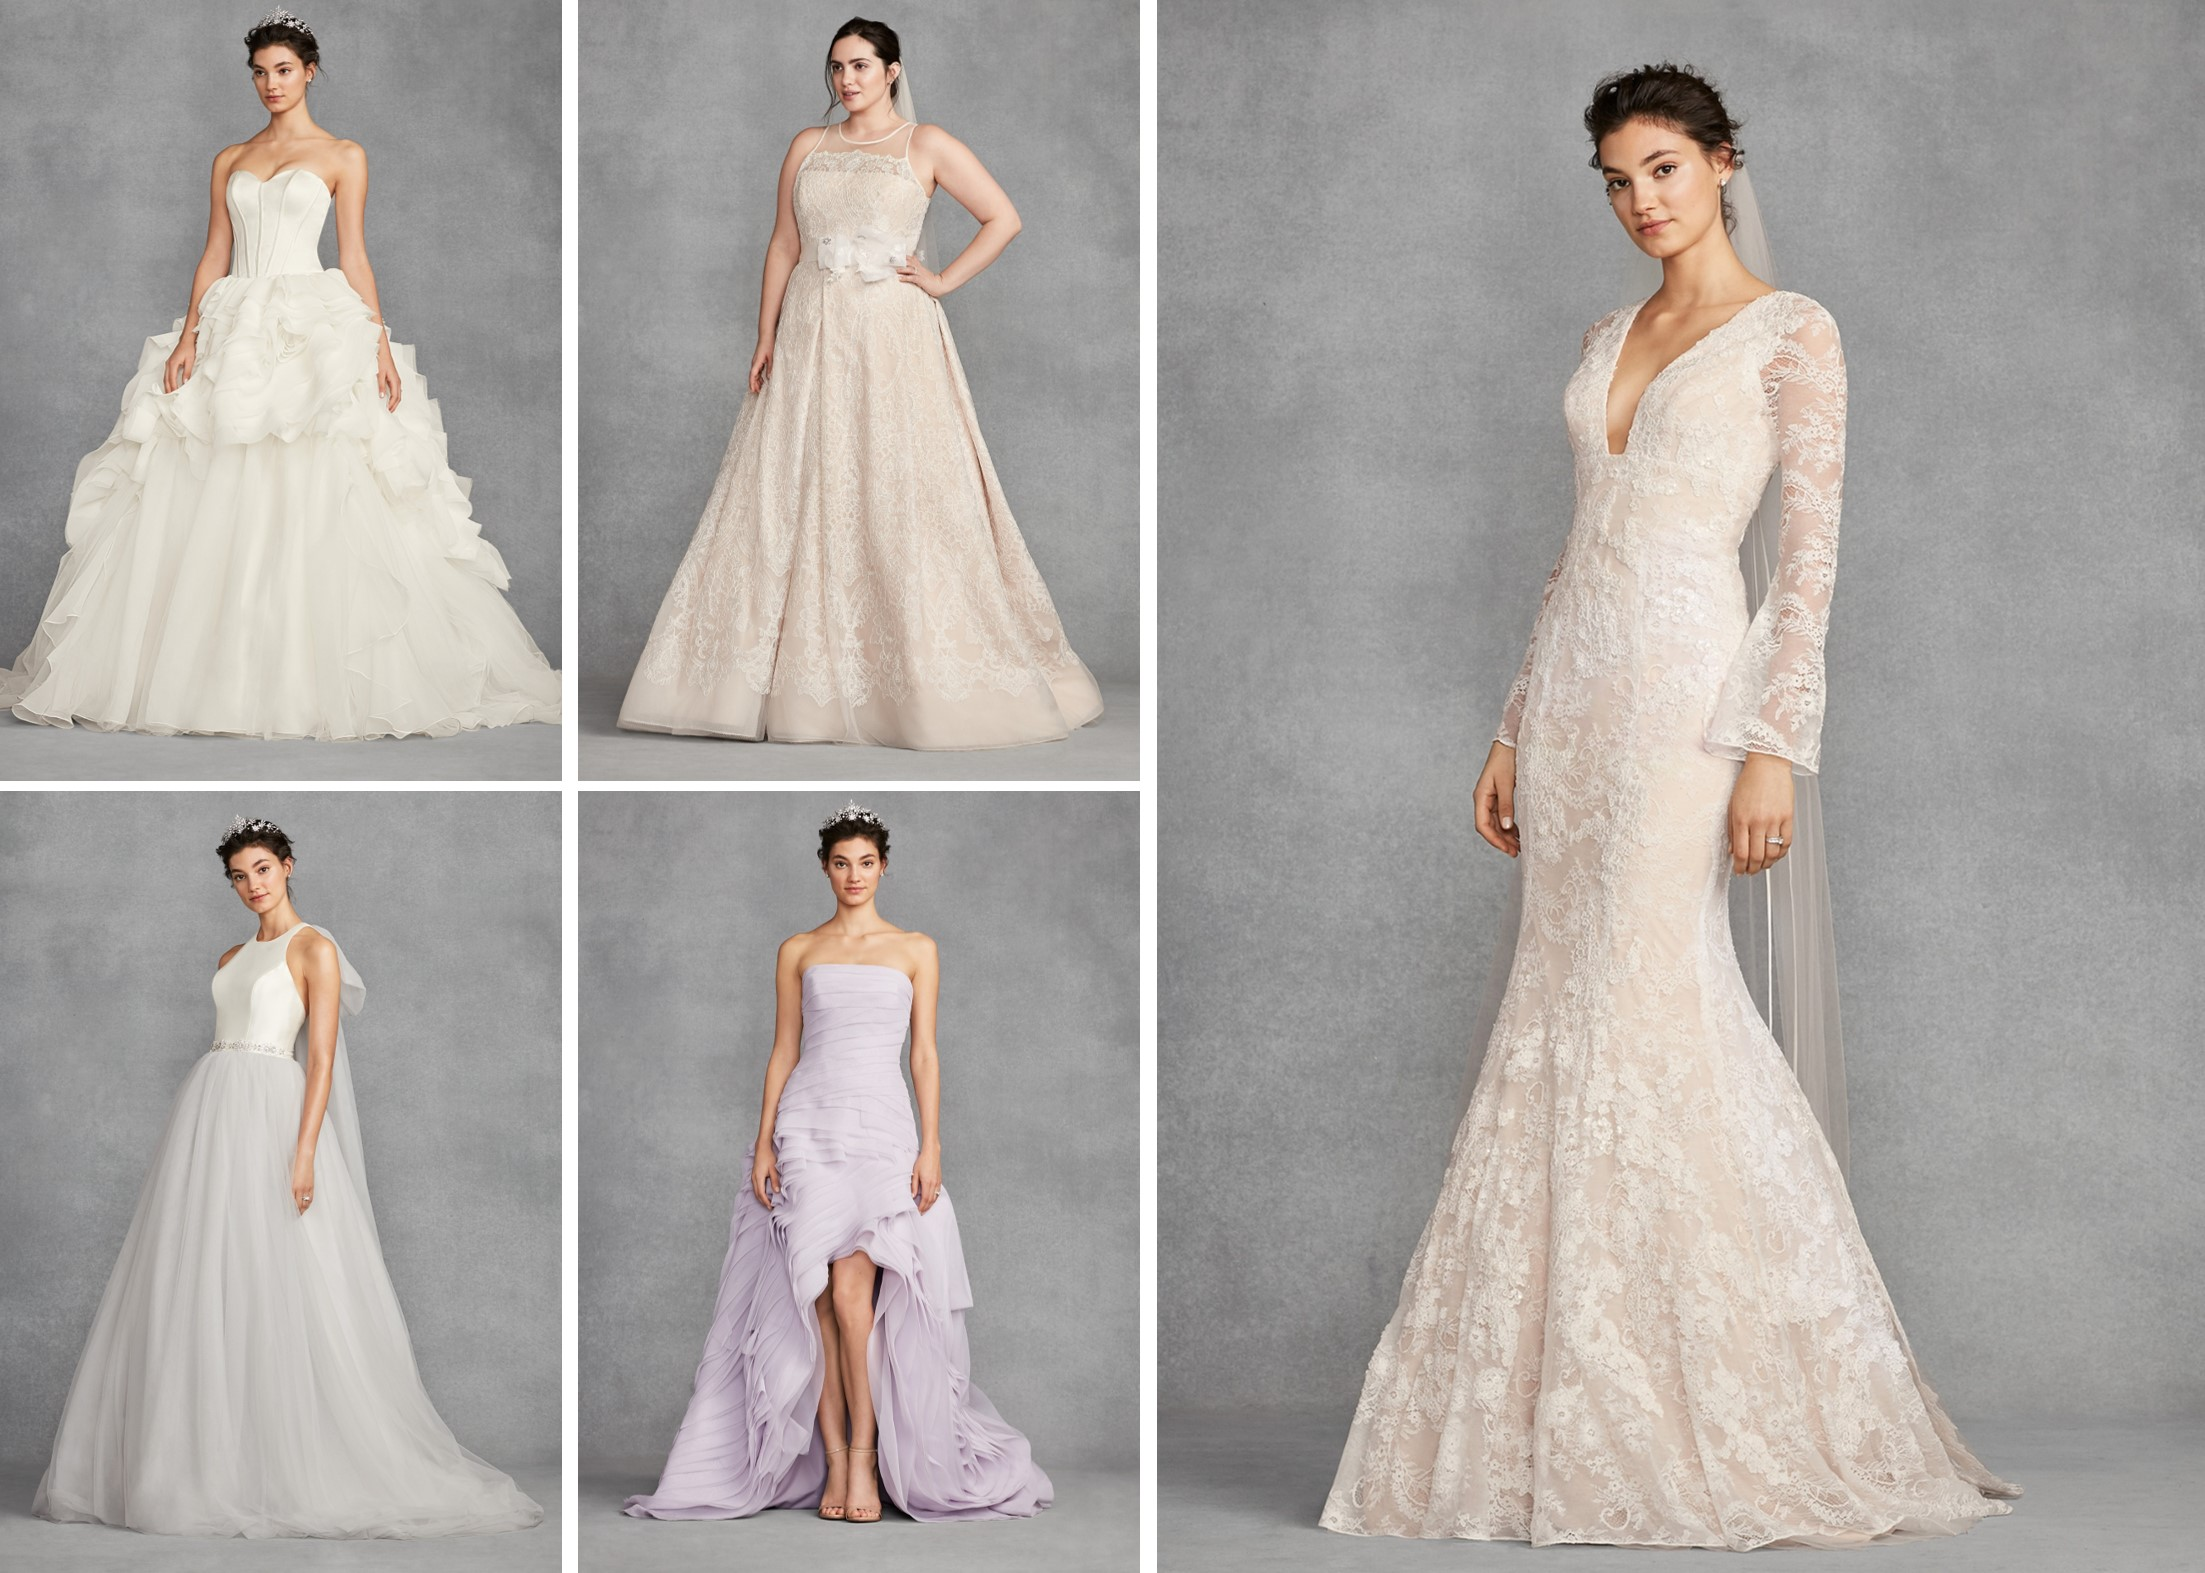 Wedding dresses from WHITE by Vera Wang at David's Bridal.